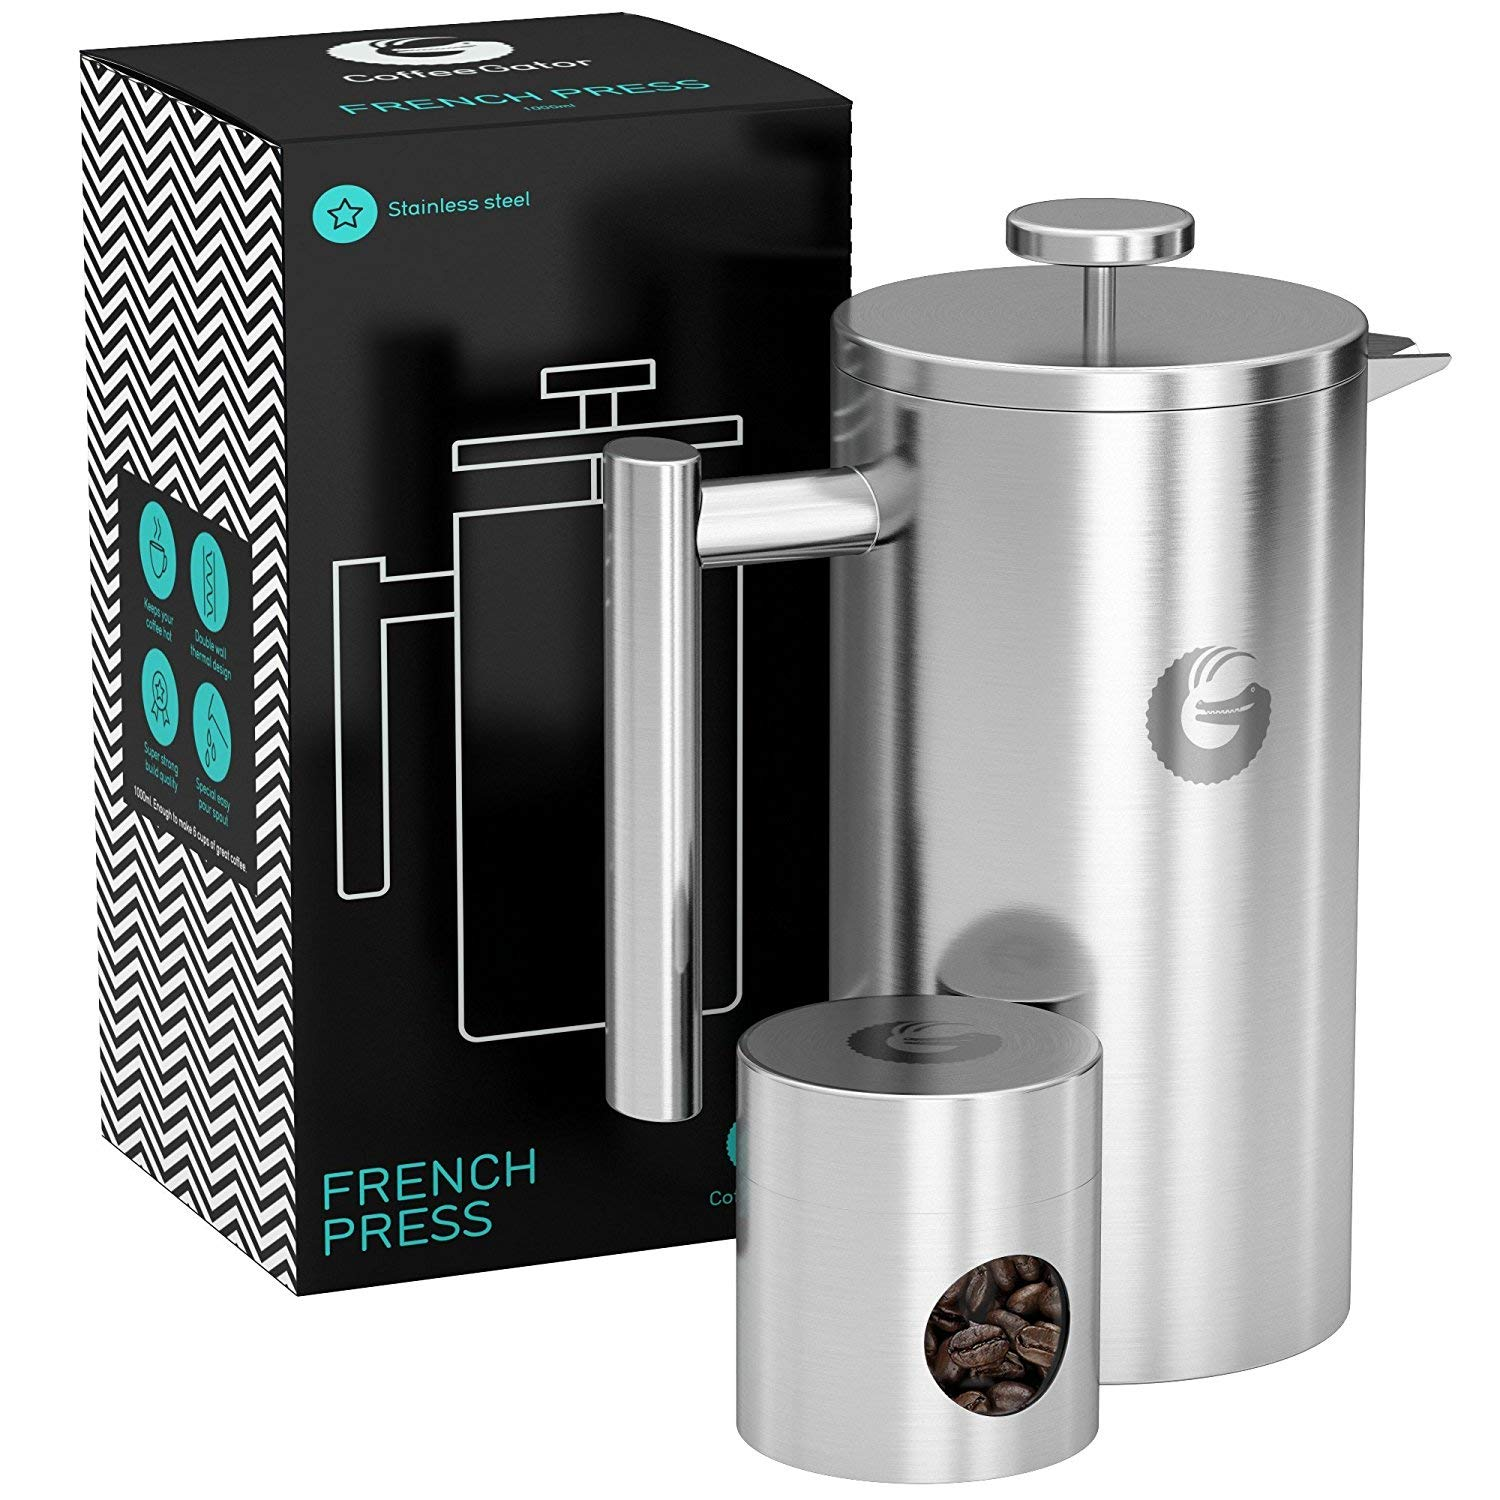 Large French Press Coffee Maker – Vacuum Insulated Stainless Steel, Silver, 34floz product image